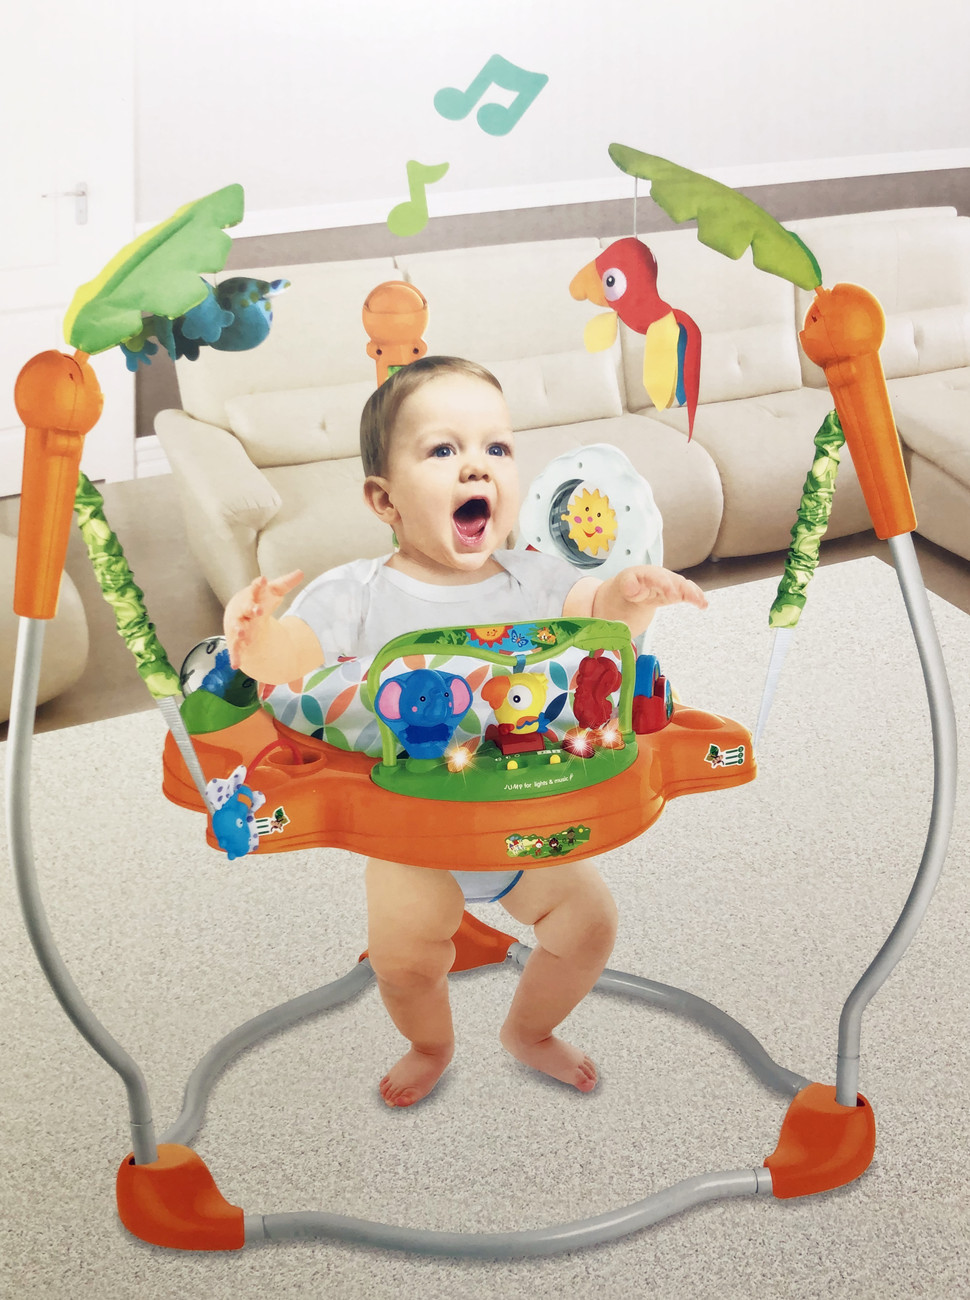 H8d4f7317fc994aedb1e3517a21ad9e9eP Multifunctional Electric Baby Jumping Walker Cradle Rainforest Baby Swing Body-building Rocking Chair Lucky Child Swing 3 M~2 Y